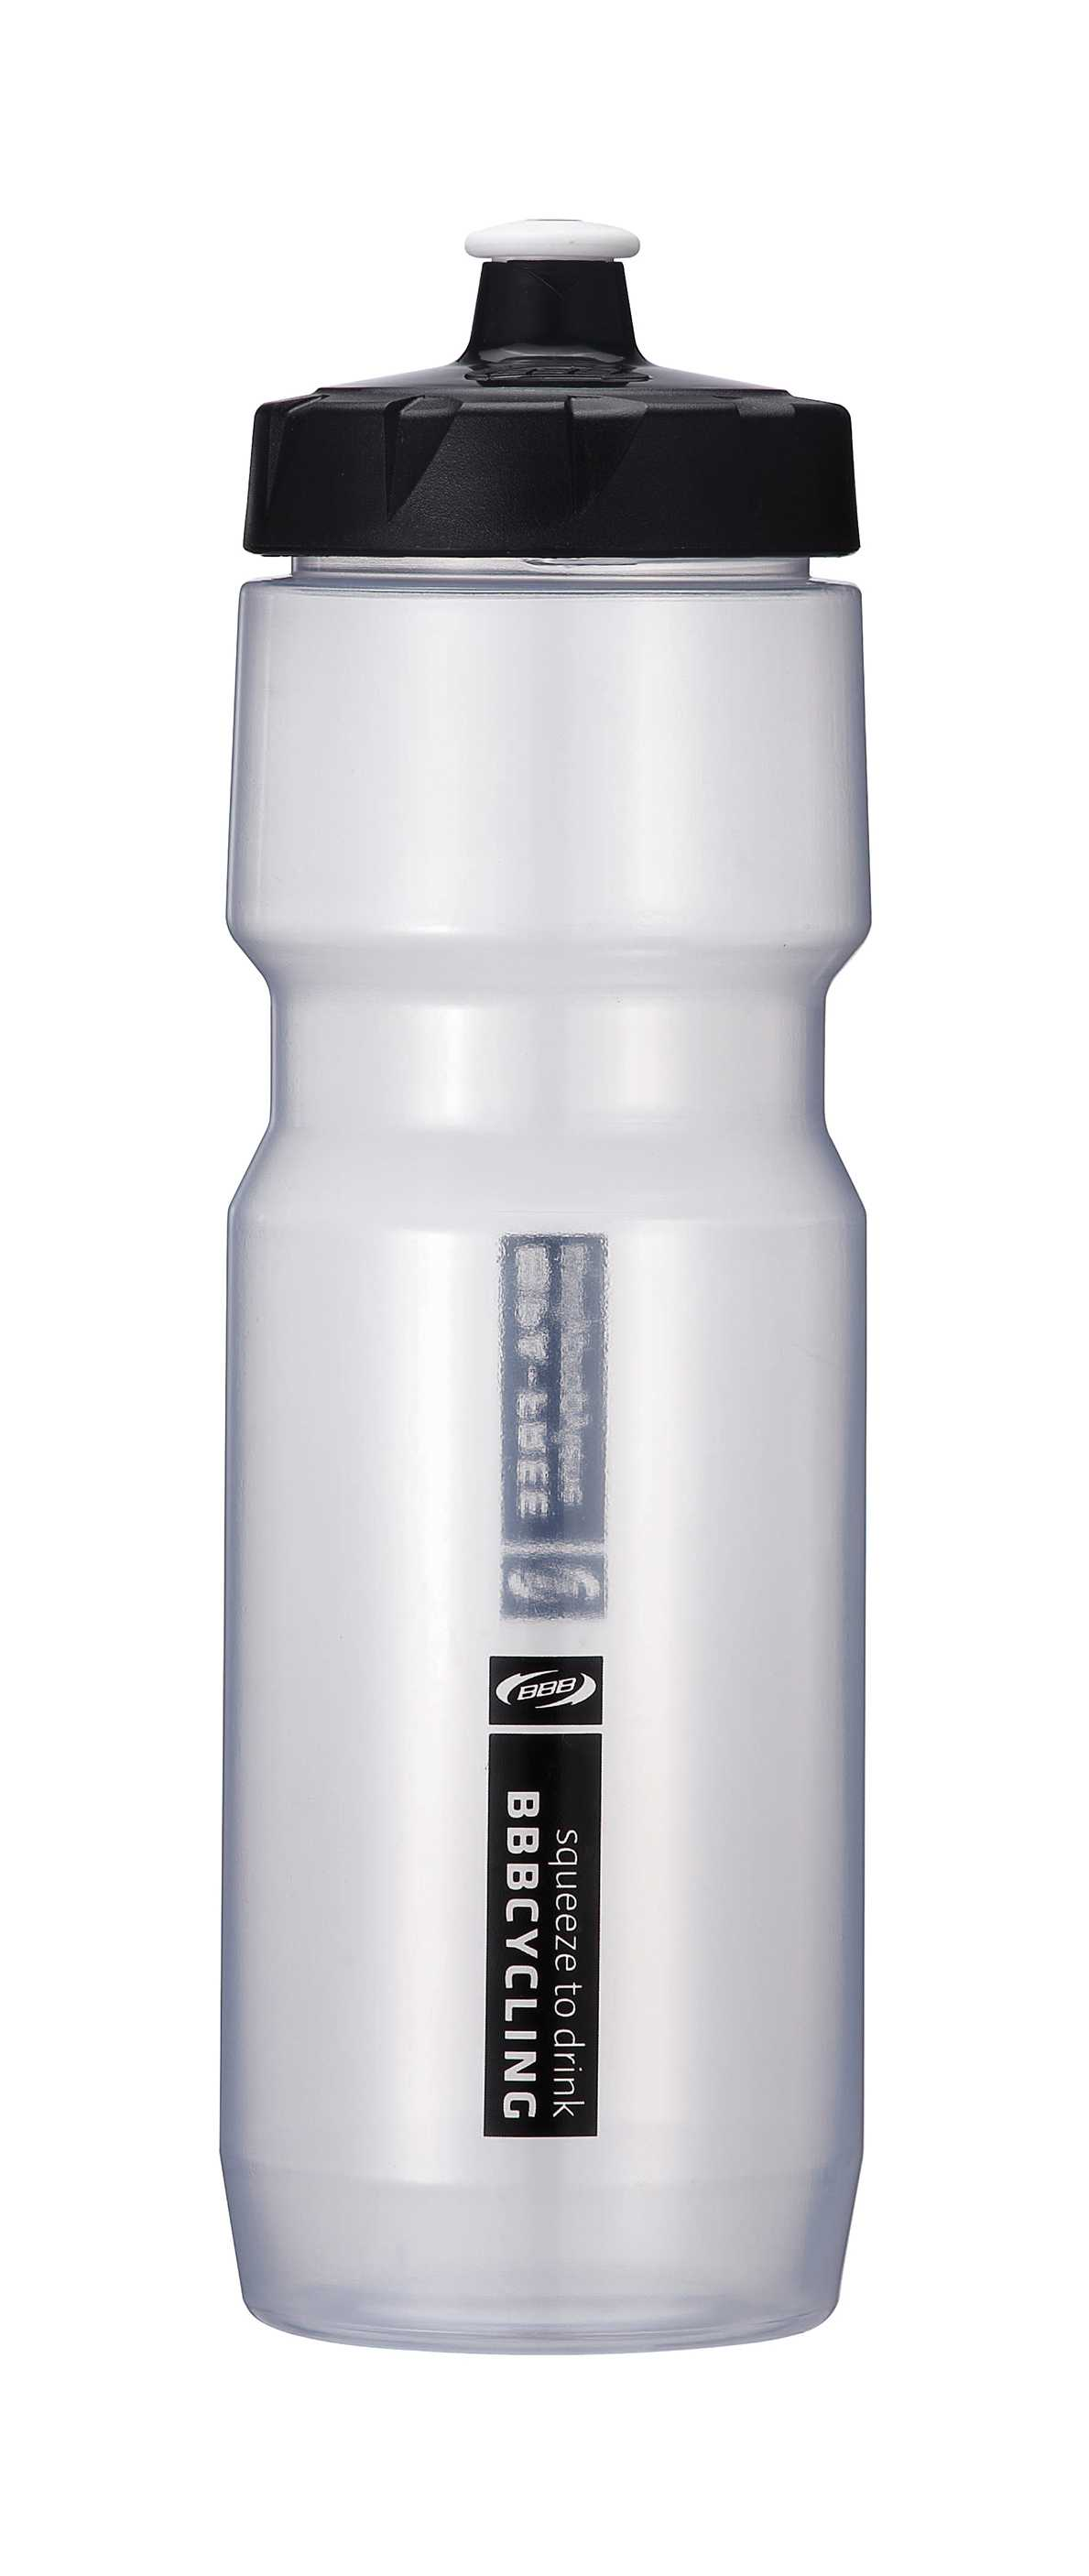 BBB Comptank XL Water Bottle 750ml - Clear/Black